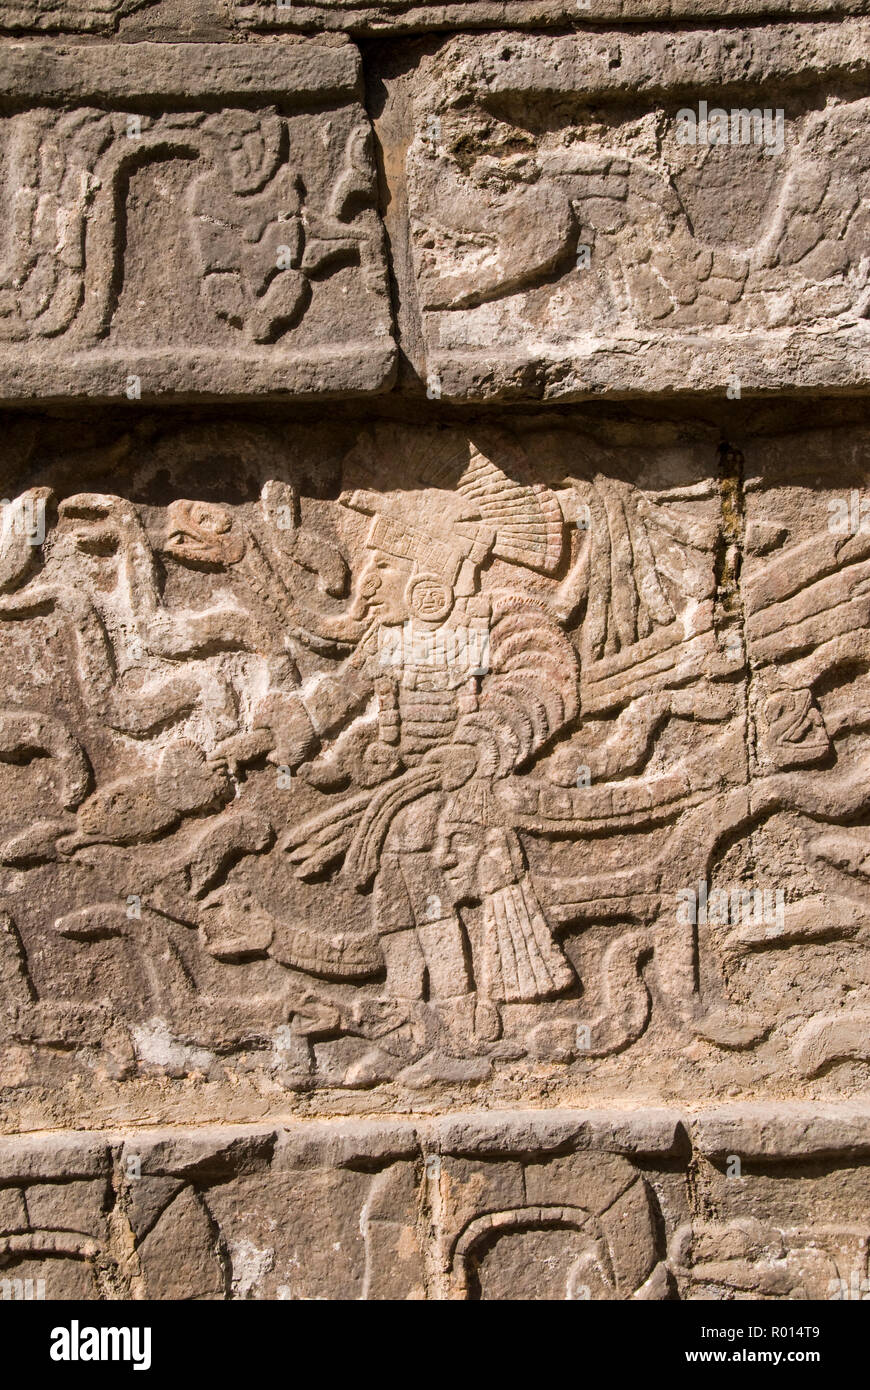 The stone skull platform (tzompantli), decorated with images of warriors carrying the severed heads of enemies, at Chichen Itza, Mexico. - Stock Image